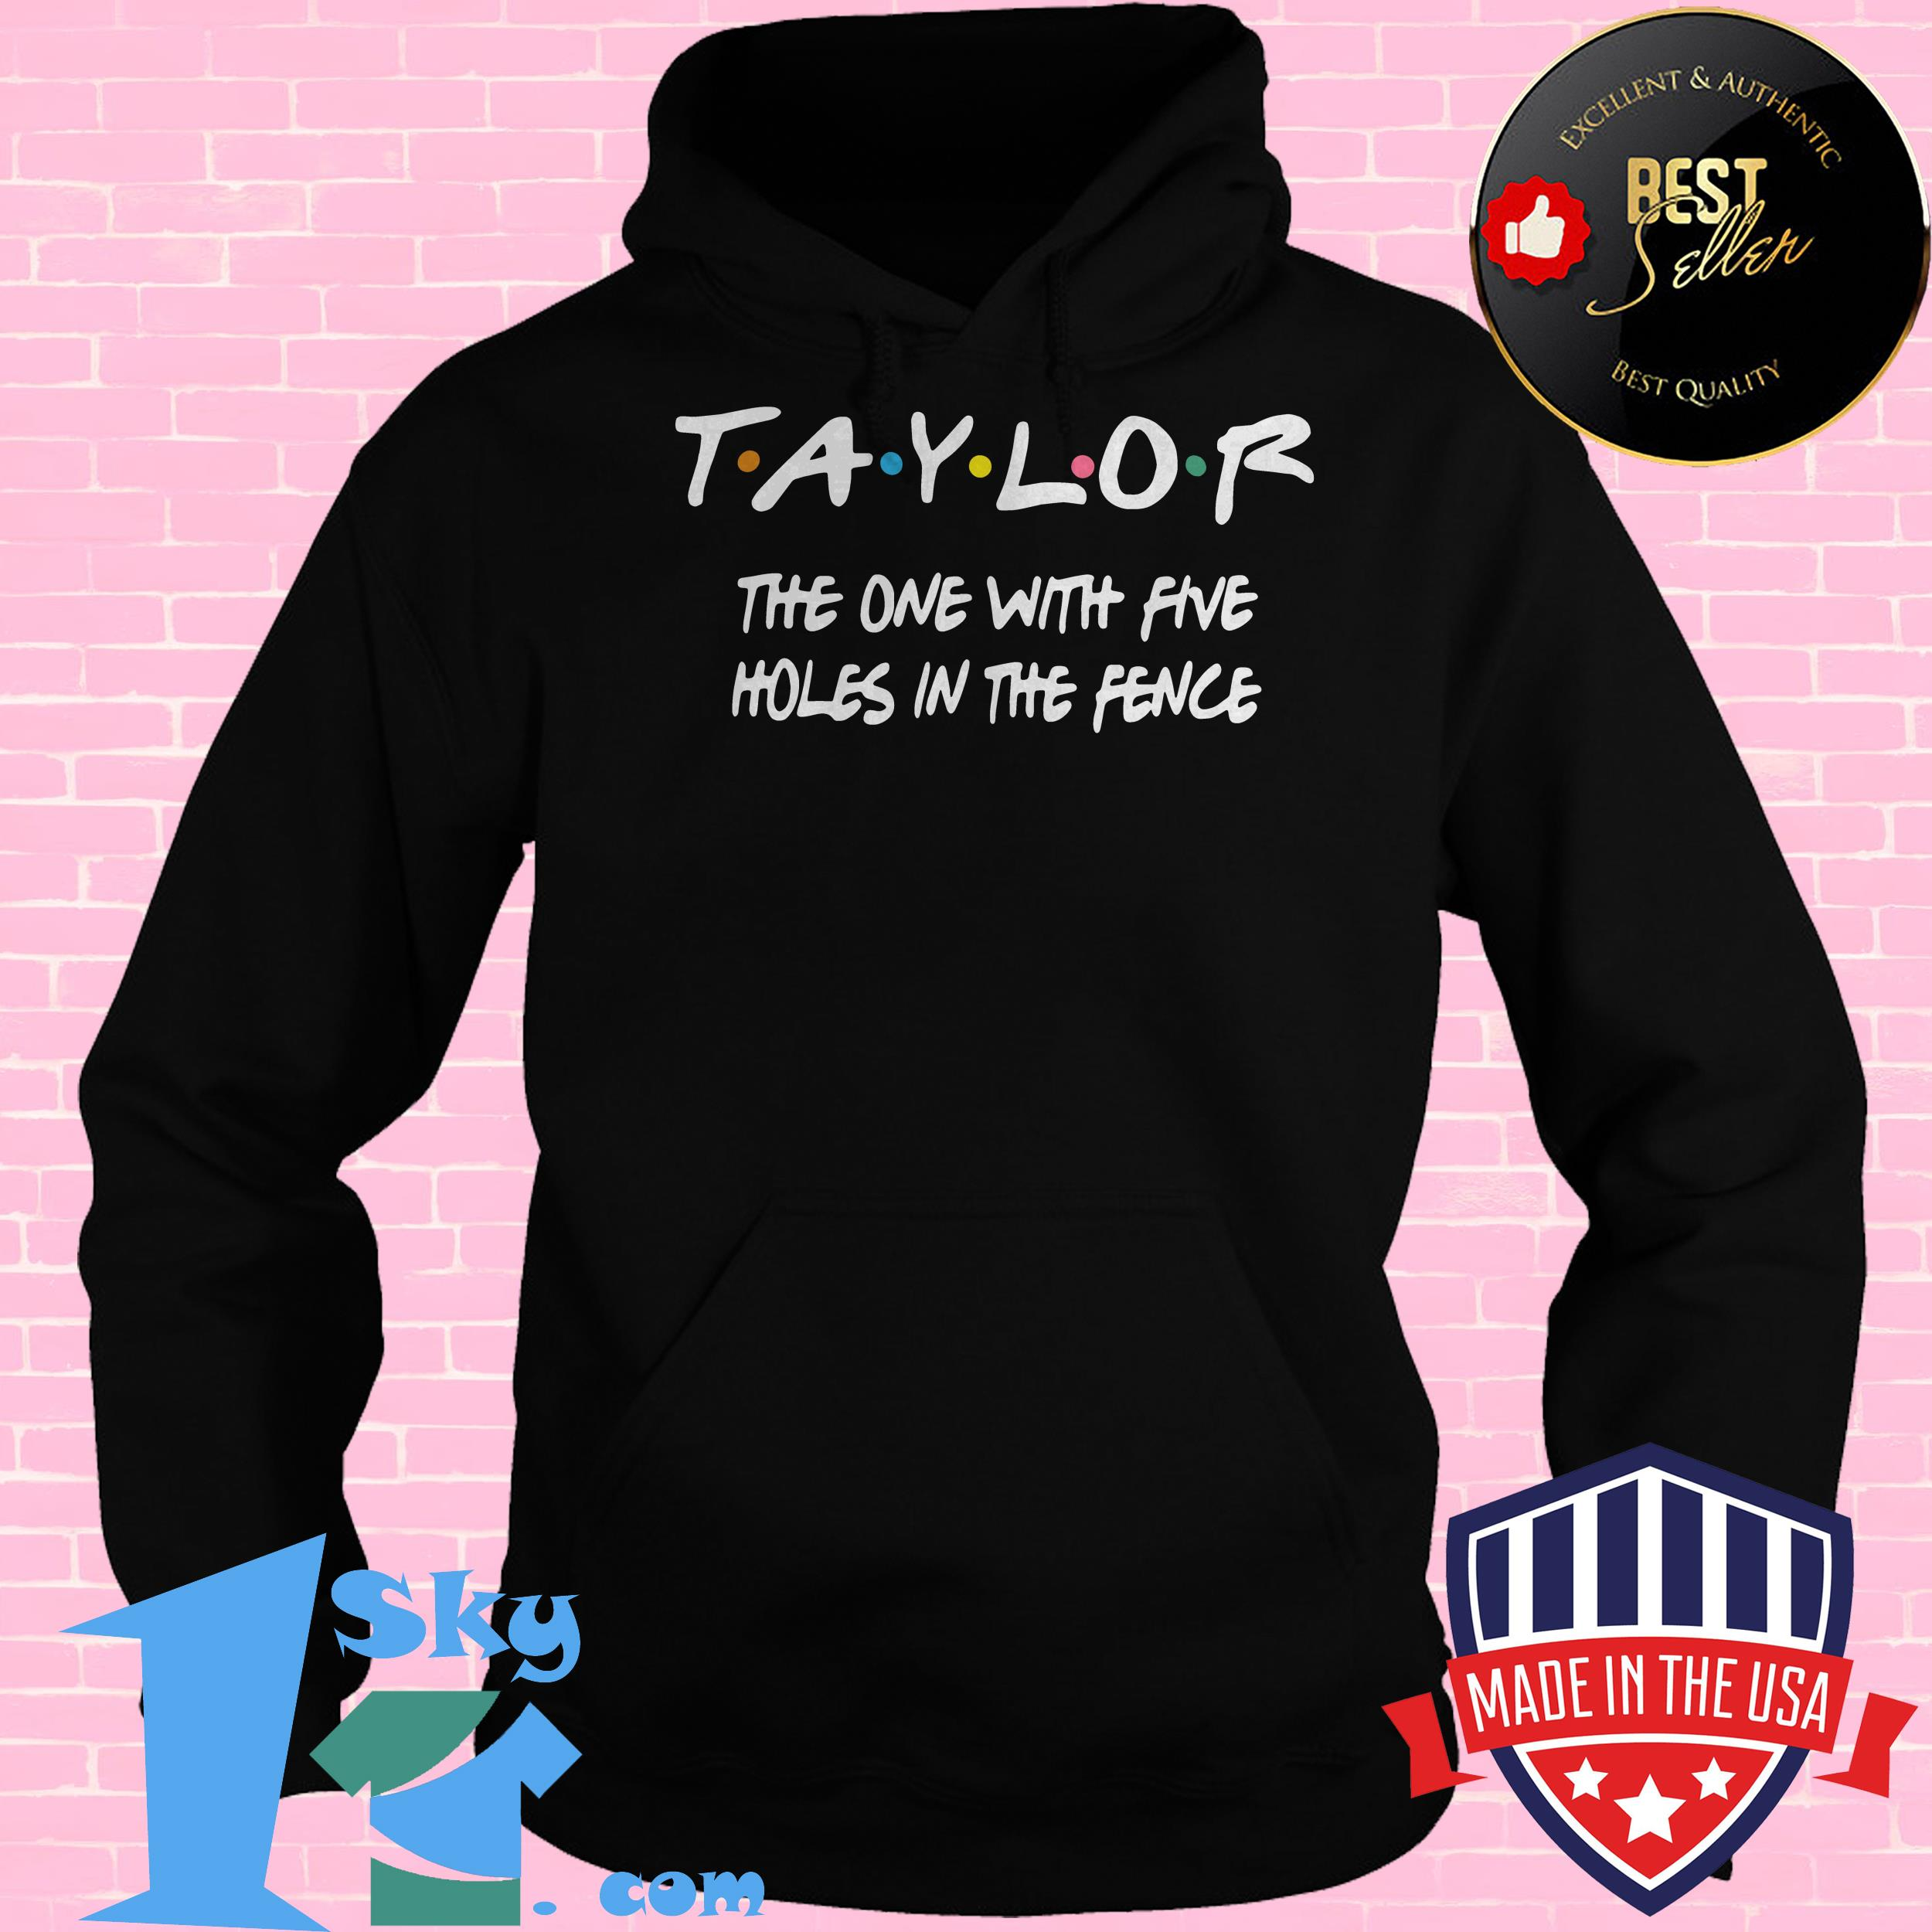 taylor swift the one with five holes in the fence hoodie - Taylor Swift The One With Five Holes In The Fence shirt